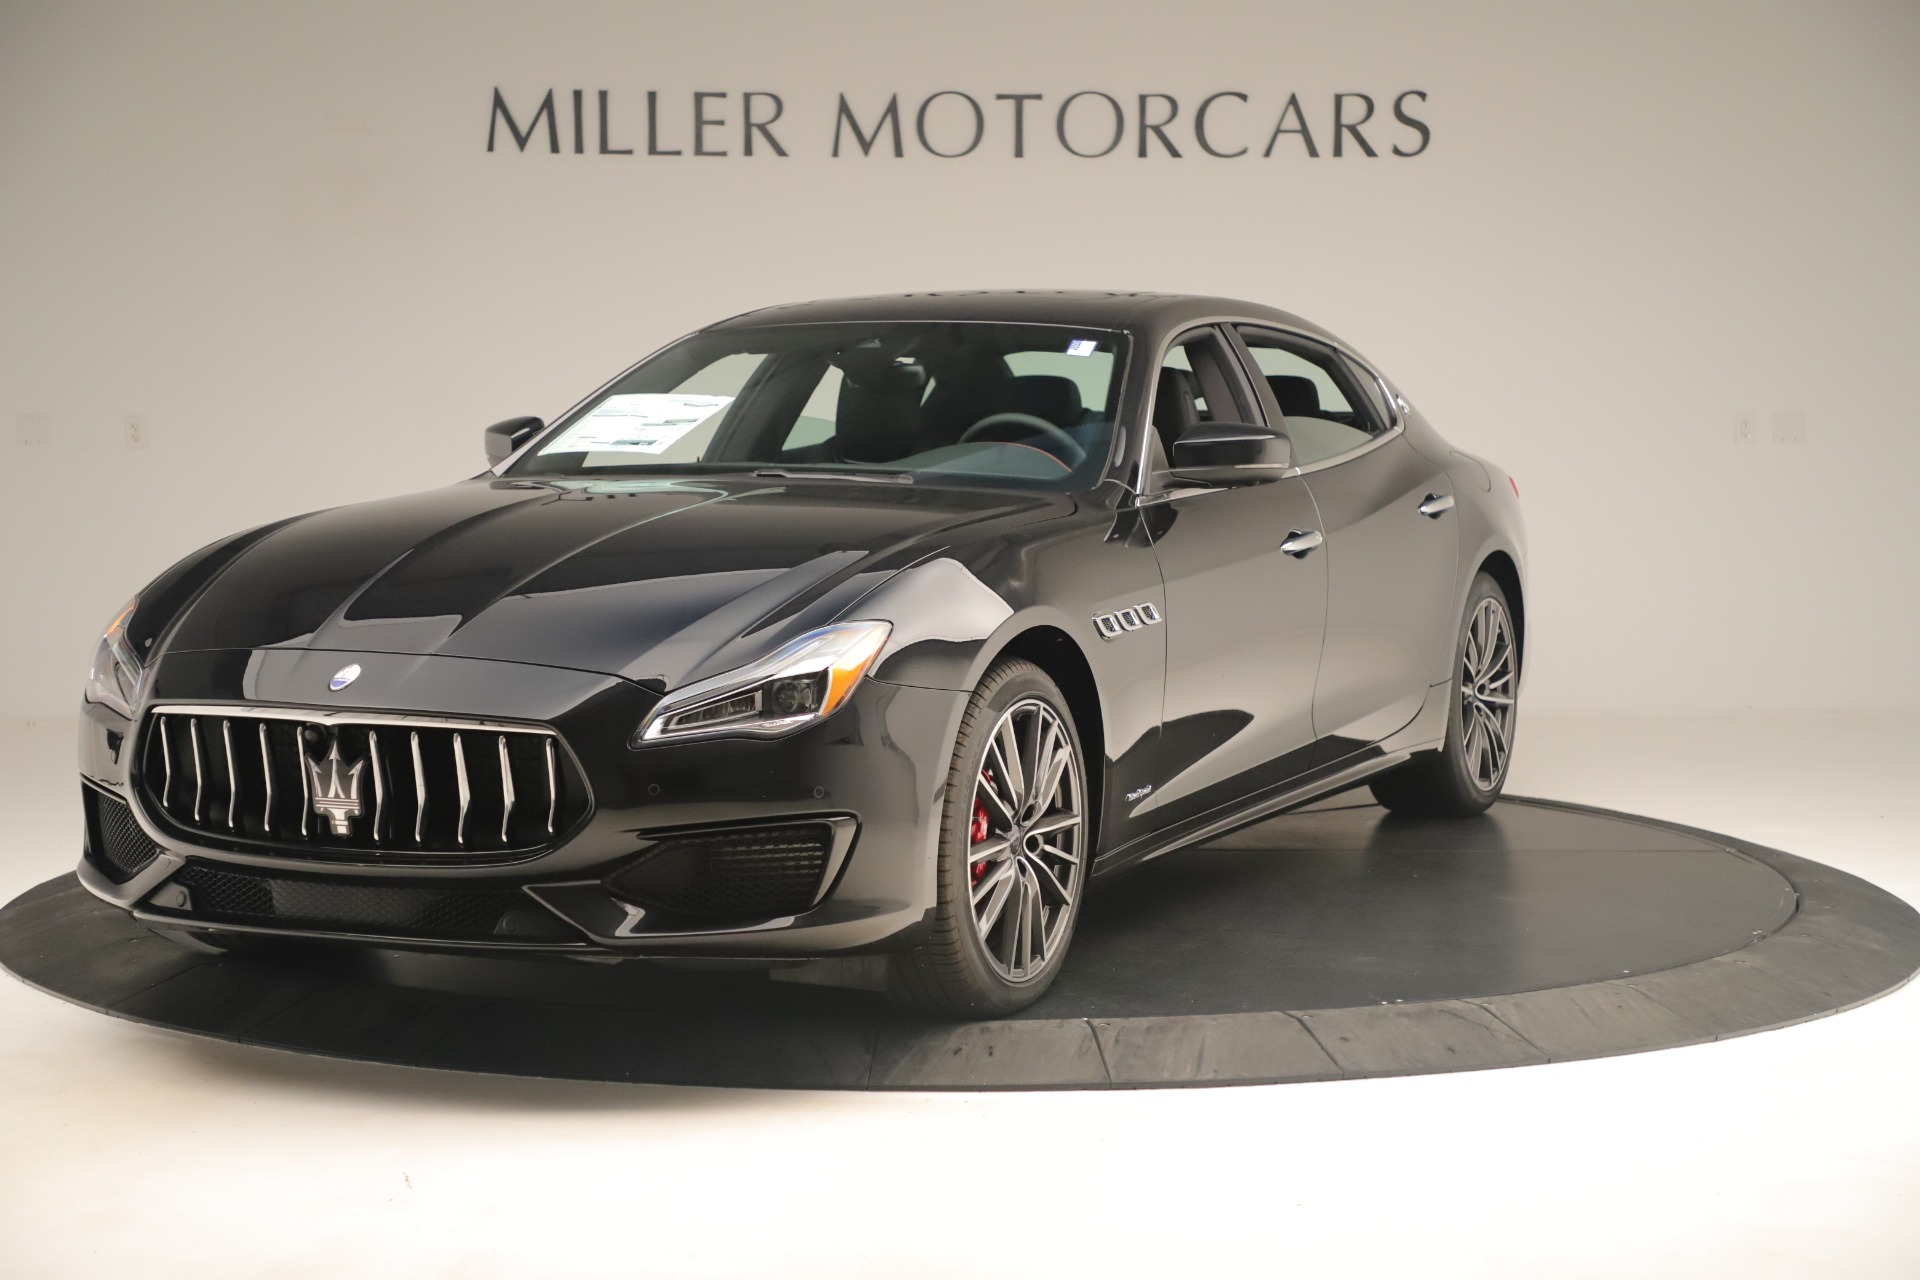 New 2019 Maserati Quattroporte S Q4 GranSport for sale Sold at McLaren Greenwich in Greenwich CT 06830 1